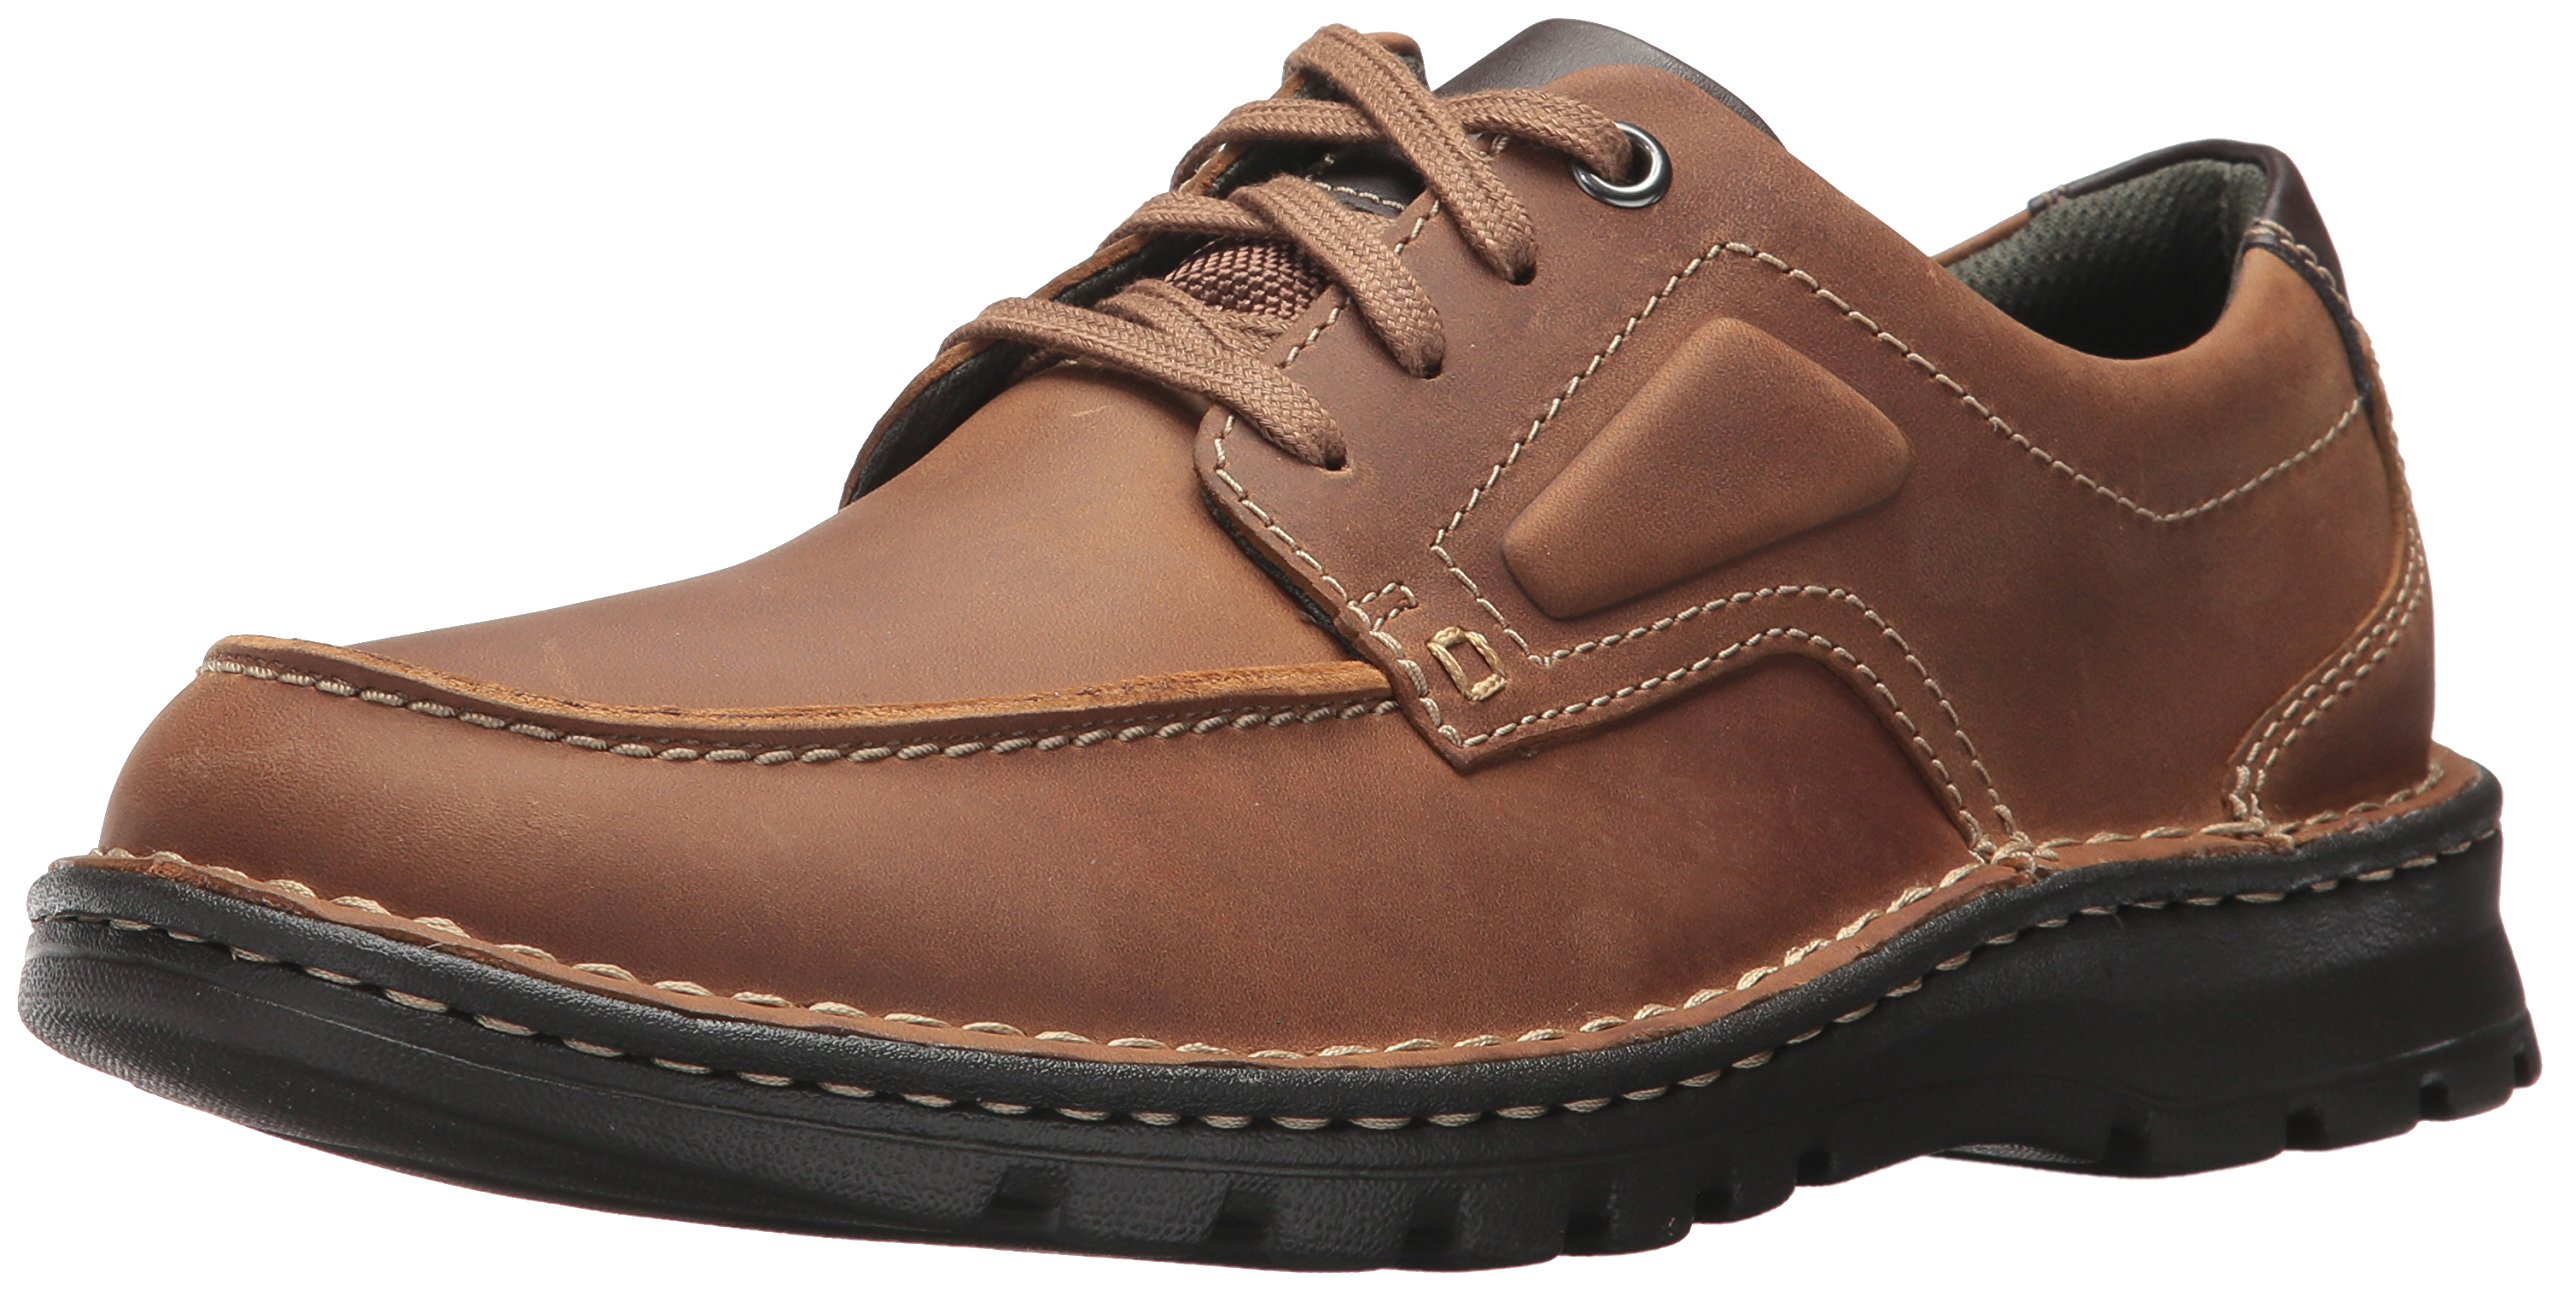 CLARKS Men's Vanek Apron Oxford, Tan Leather, 11 M US by CLARKS